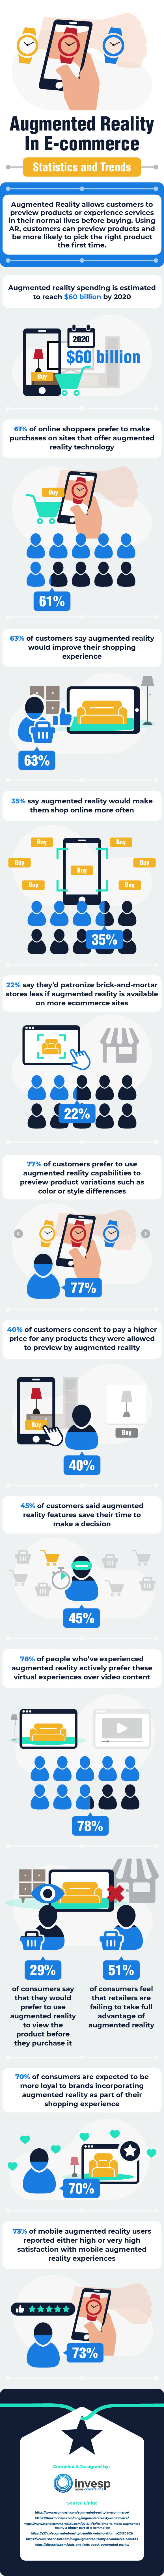 Augmented Reality in E-commerce – Statistics and Trends